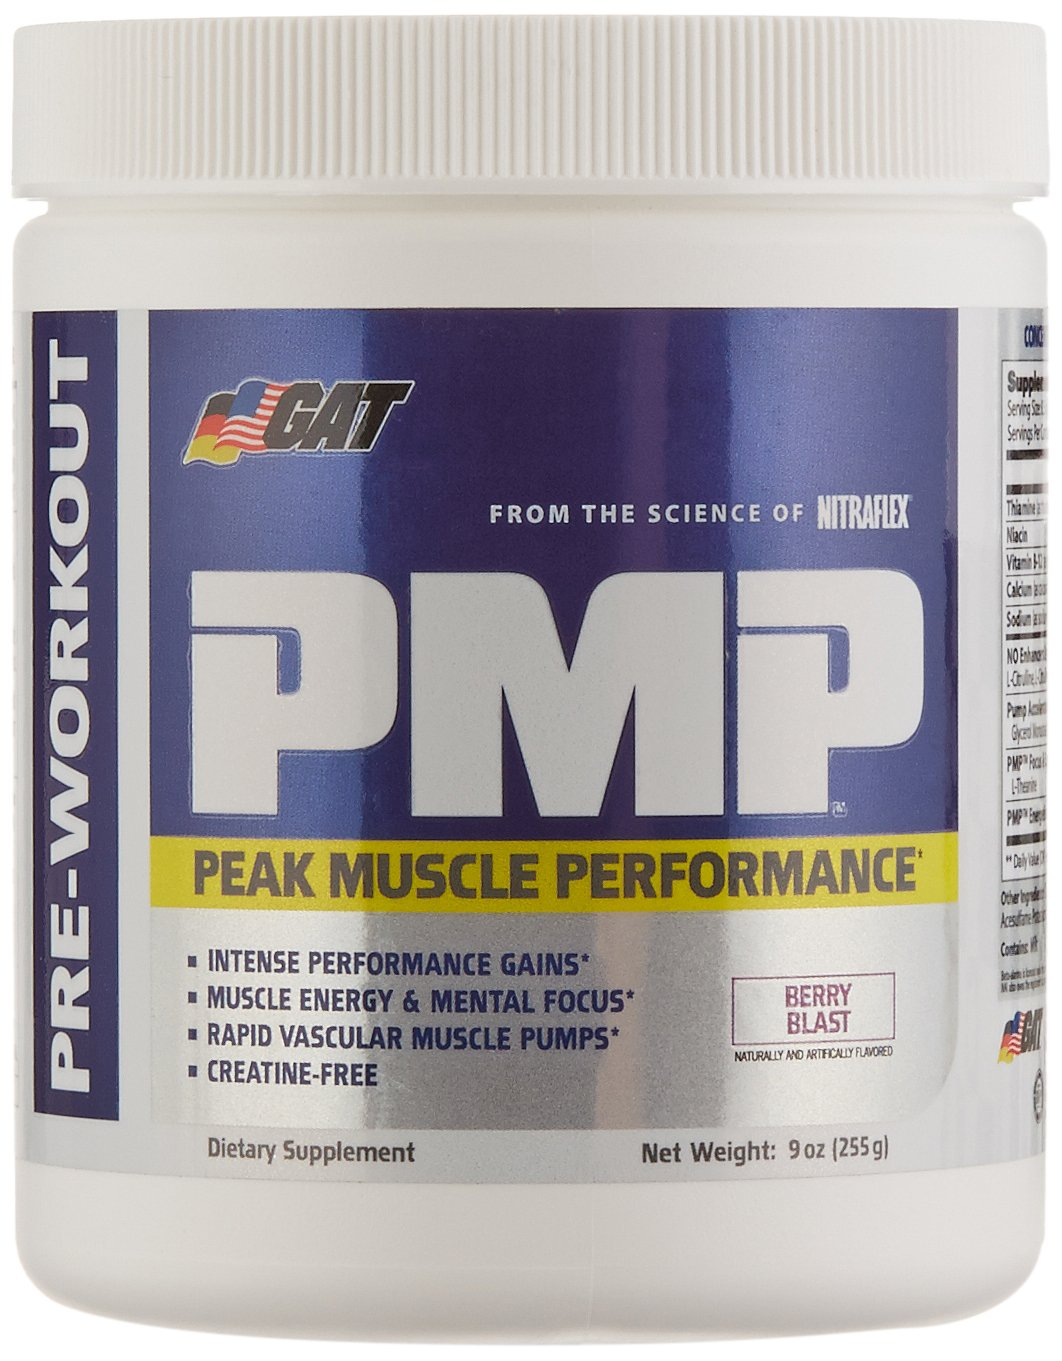 GAT PMP (Peak Muscle Performance), Next Generation Pre Workout Powder for Intense Performance Gains, Berry Blast, 30 Servings